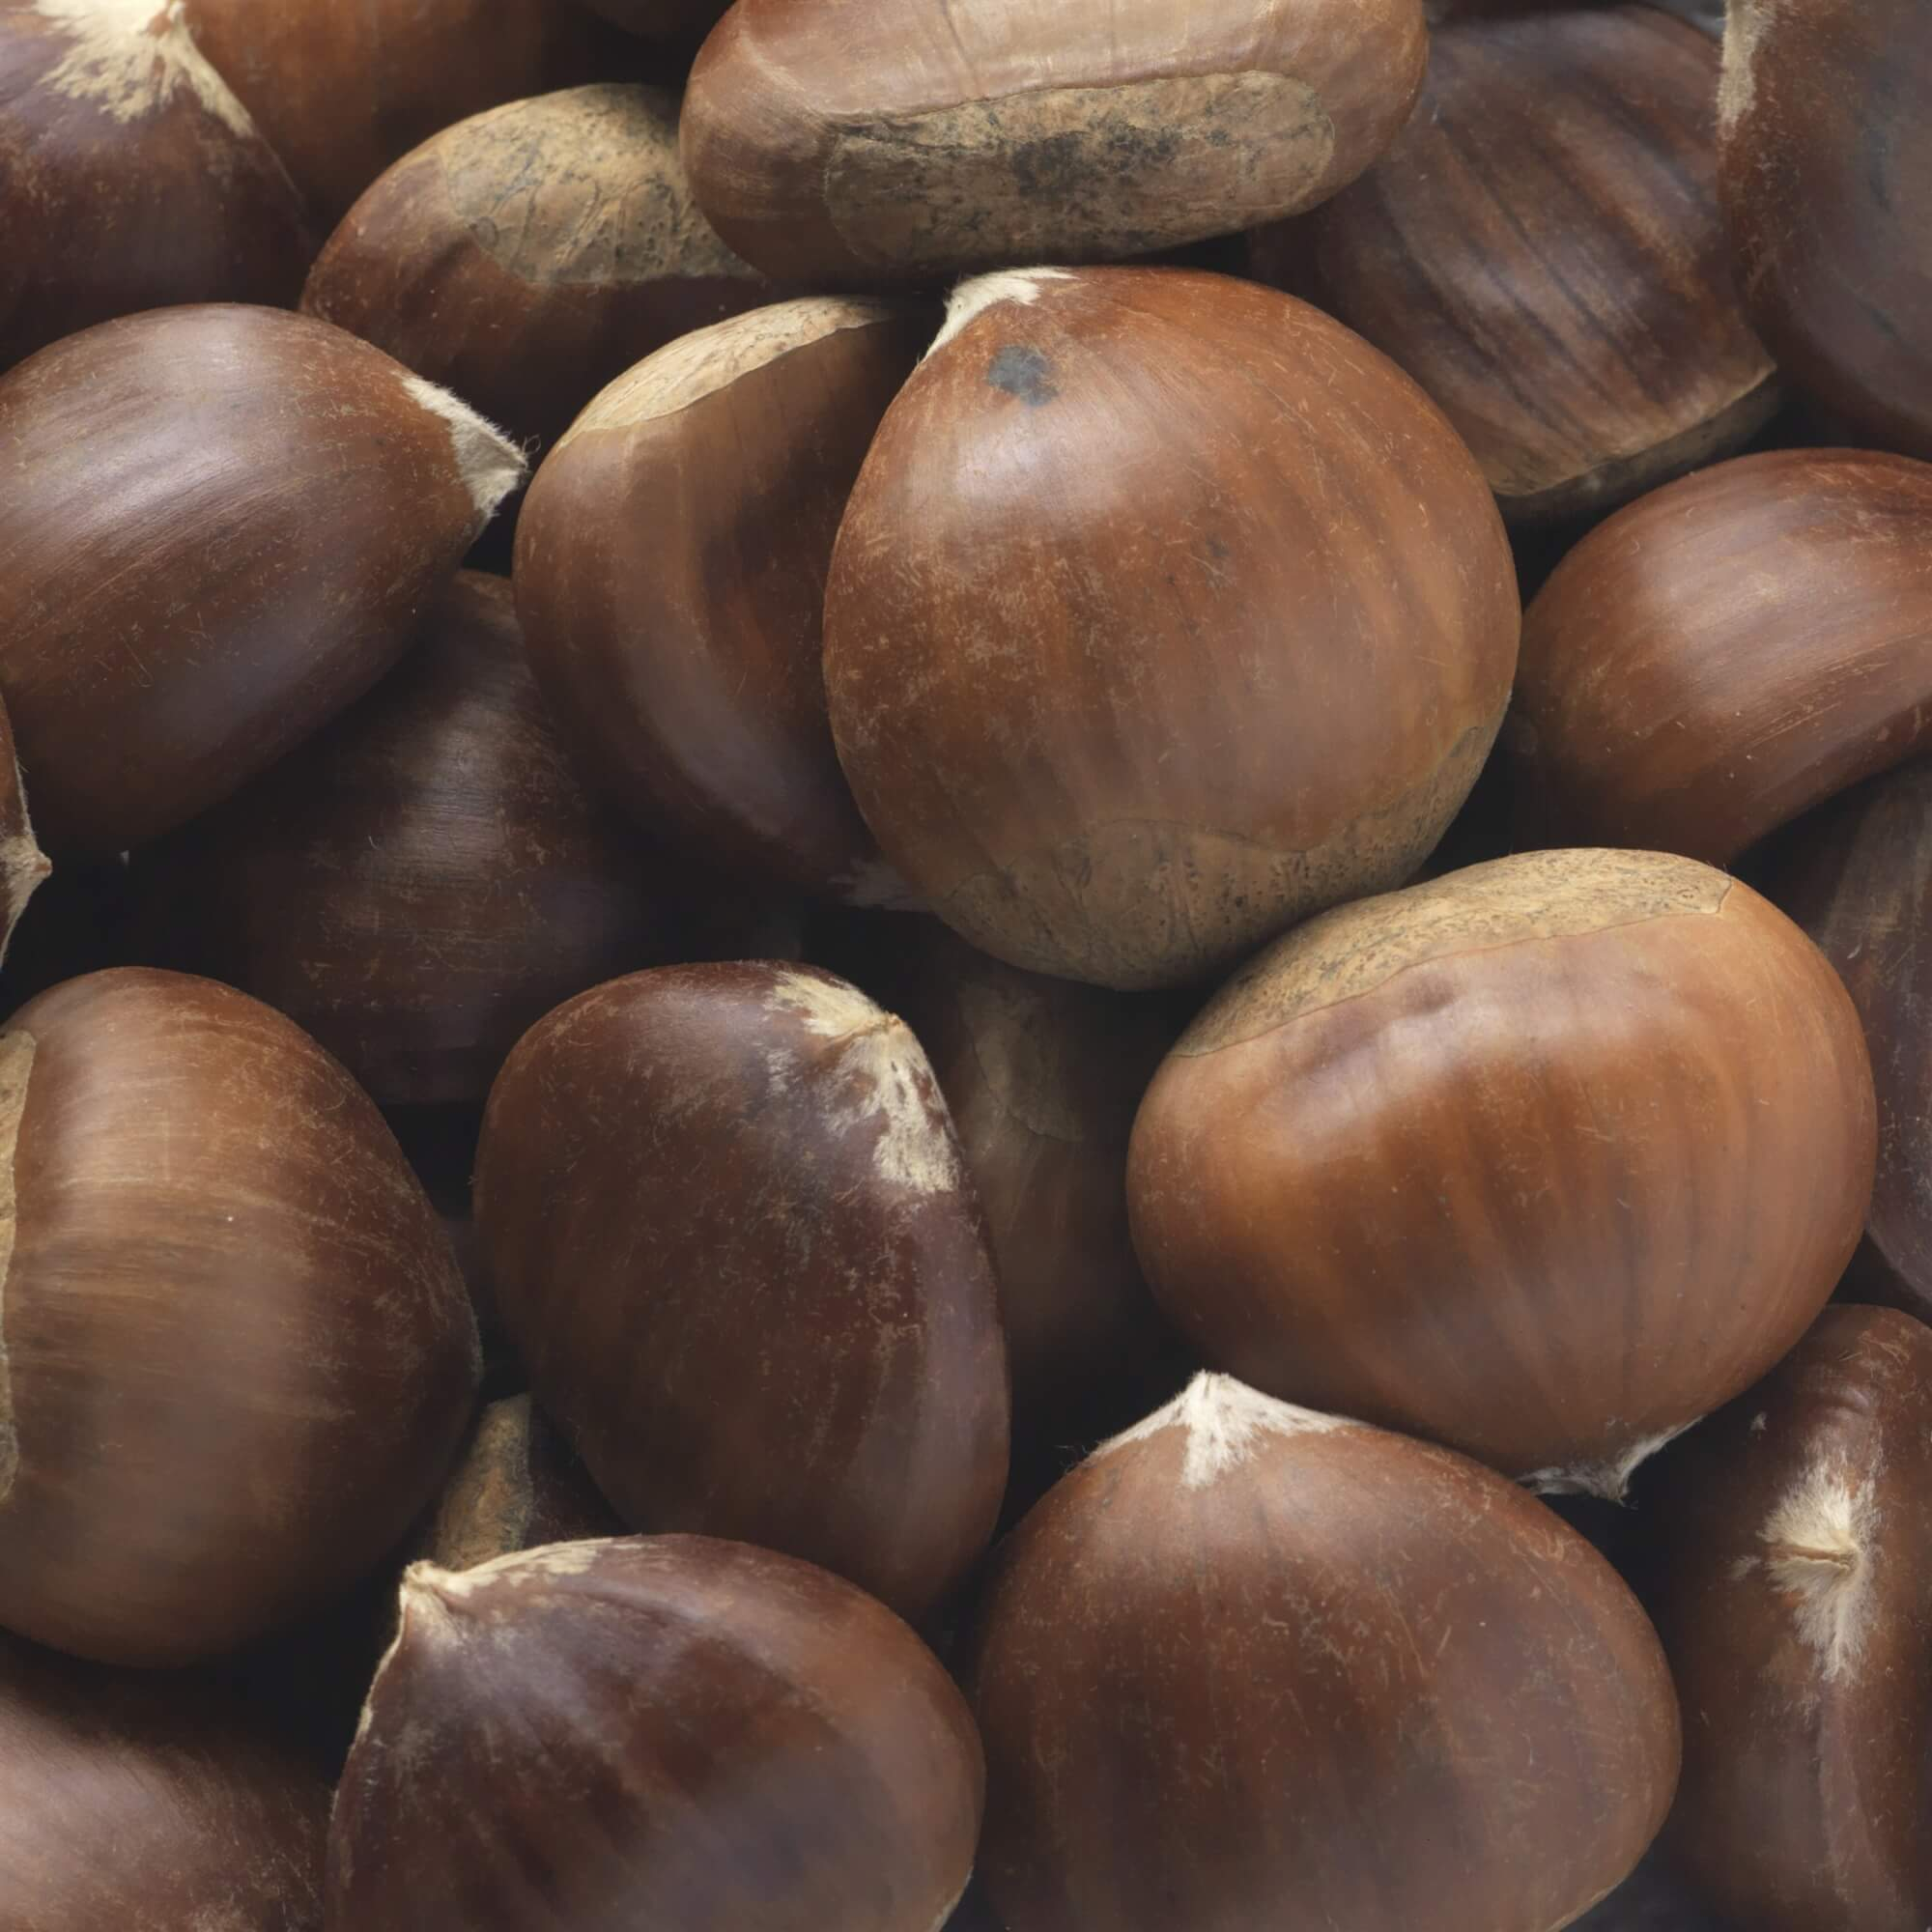 Chestnuts - A Chestnut is an edible nut often encased in a prickly husk and mainly grown in Spain, Italy and France.